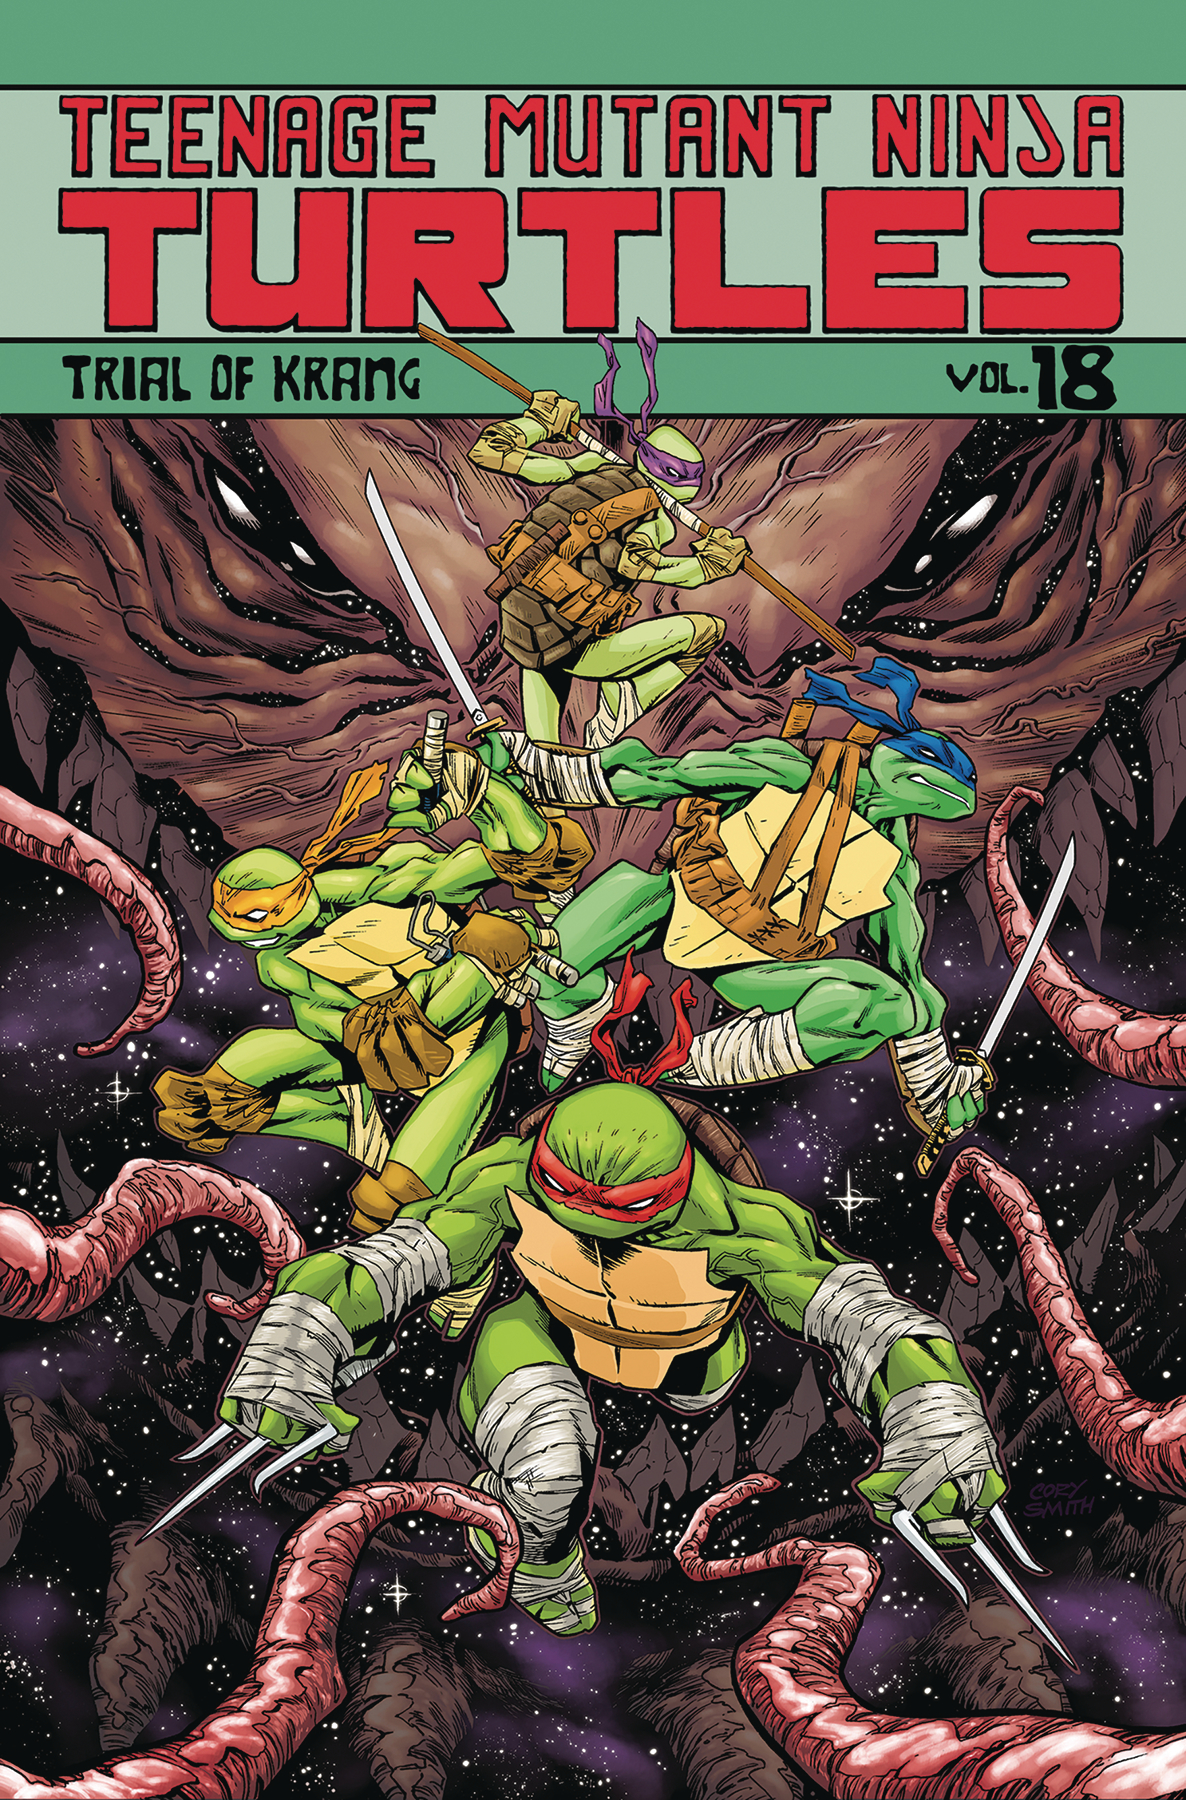 TMNT ONGOING TP VOL 18 TRIAL OF KRANG